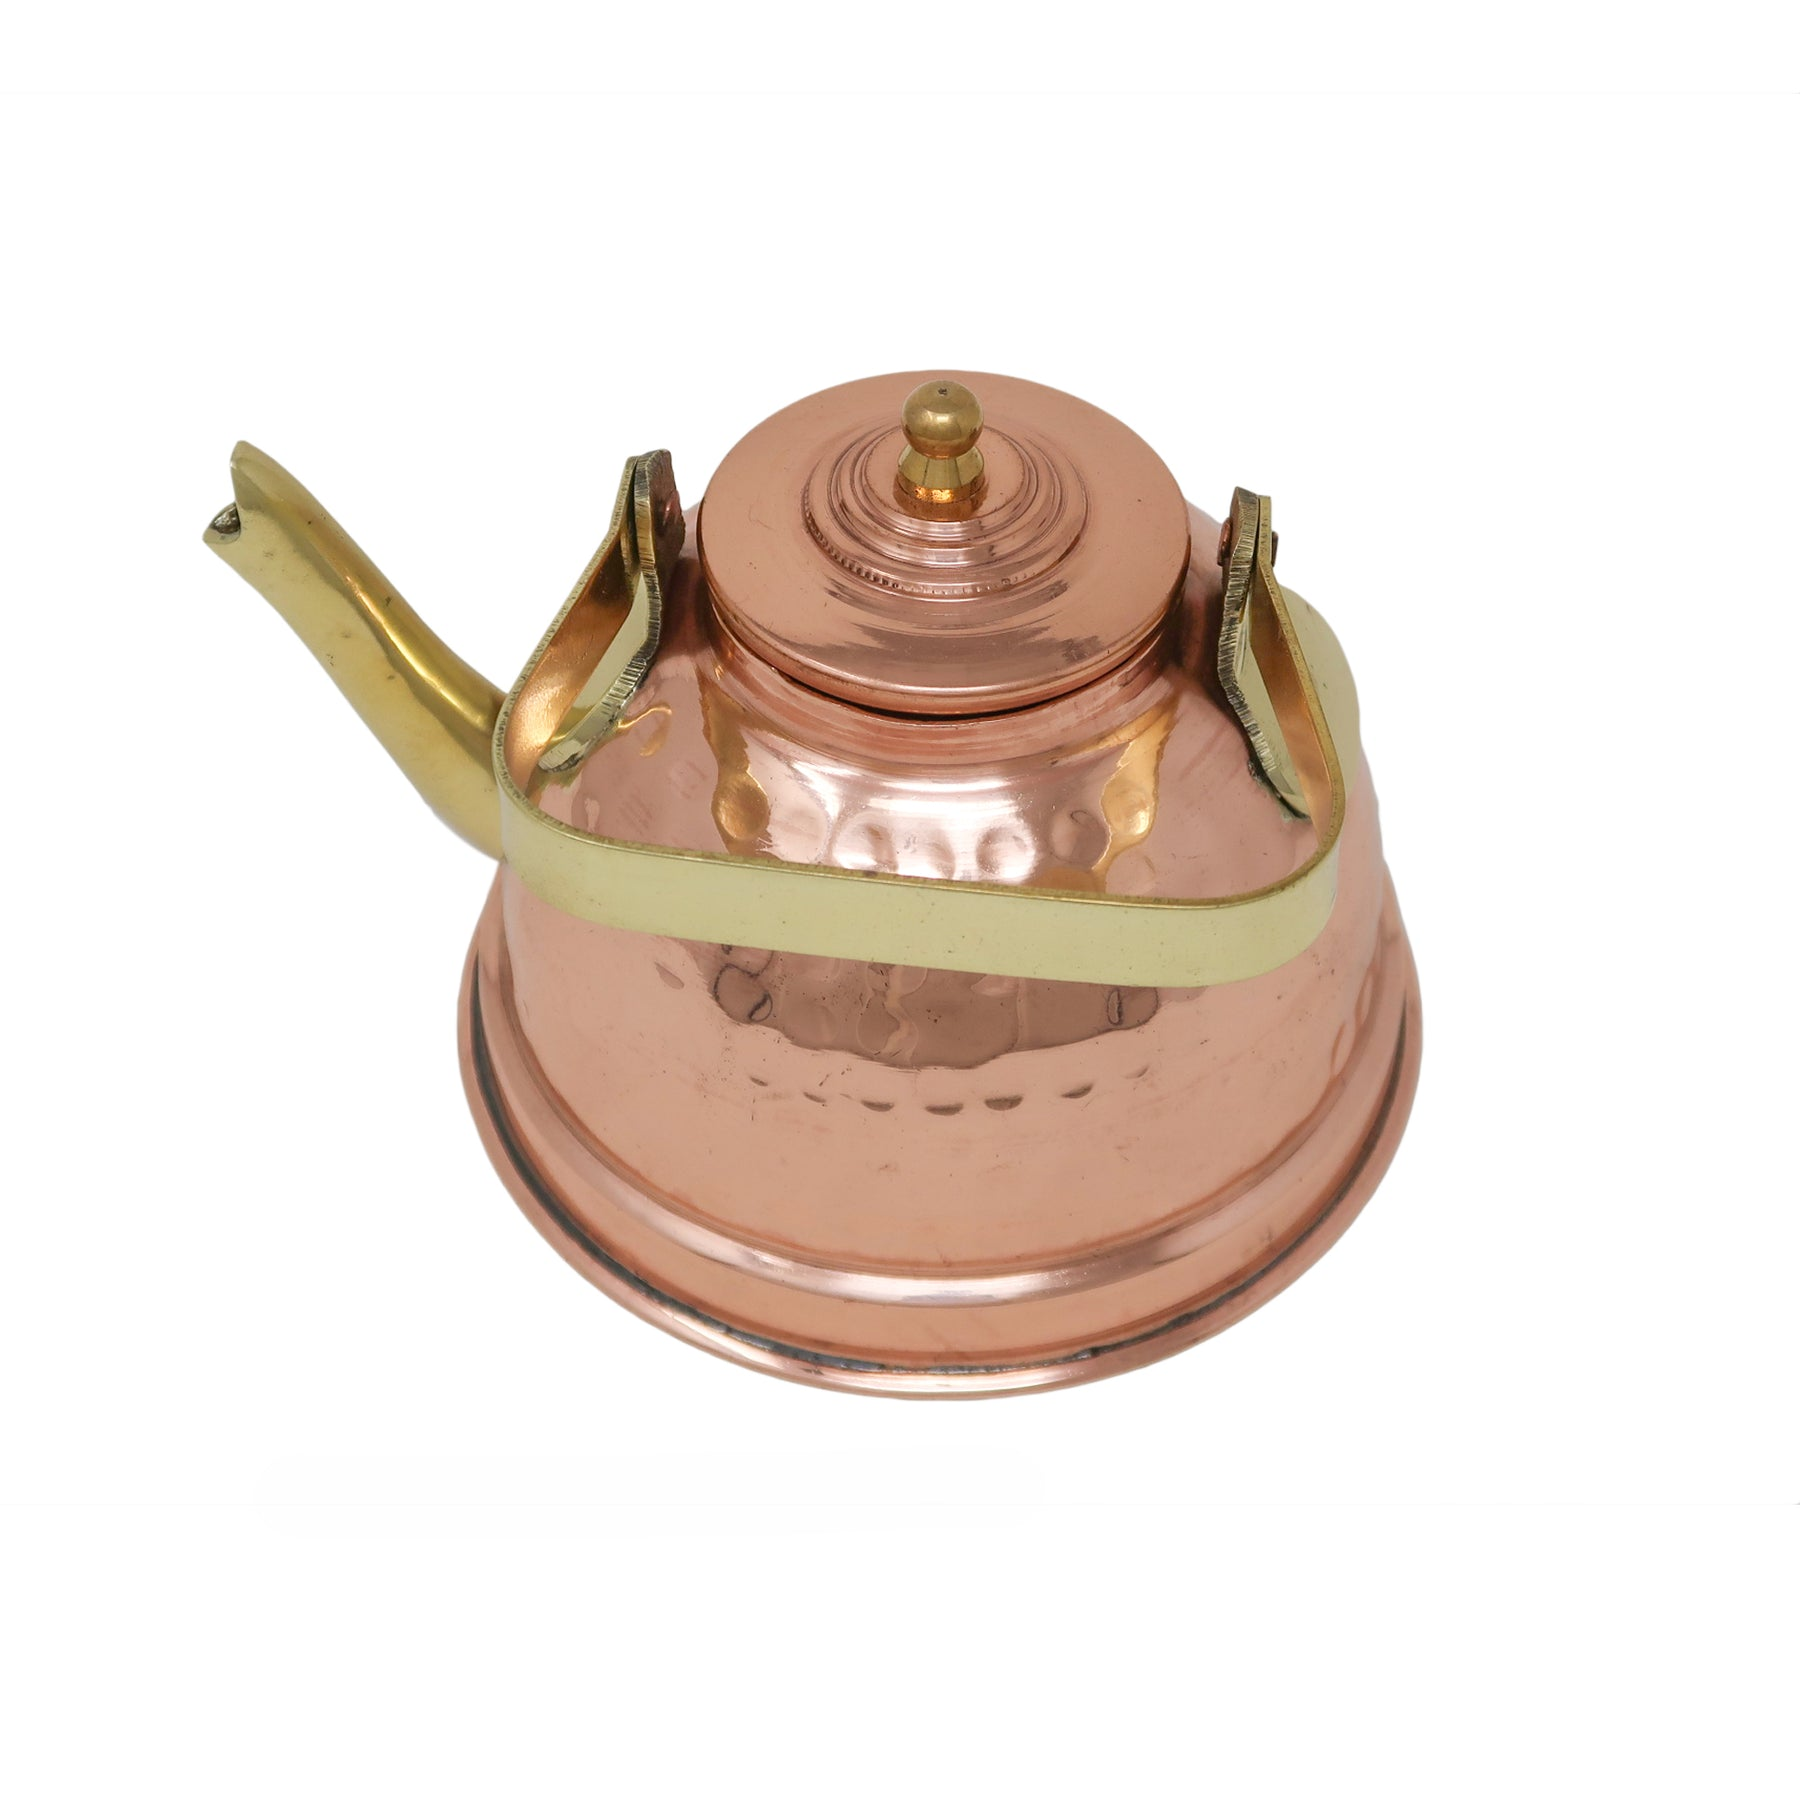 Copper Kettle For Warming Water Tea And Coffee Traditional Indian Kitchen Utensils Capacity 550 Ml